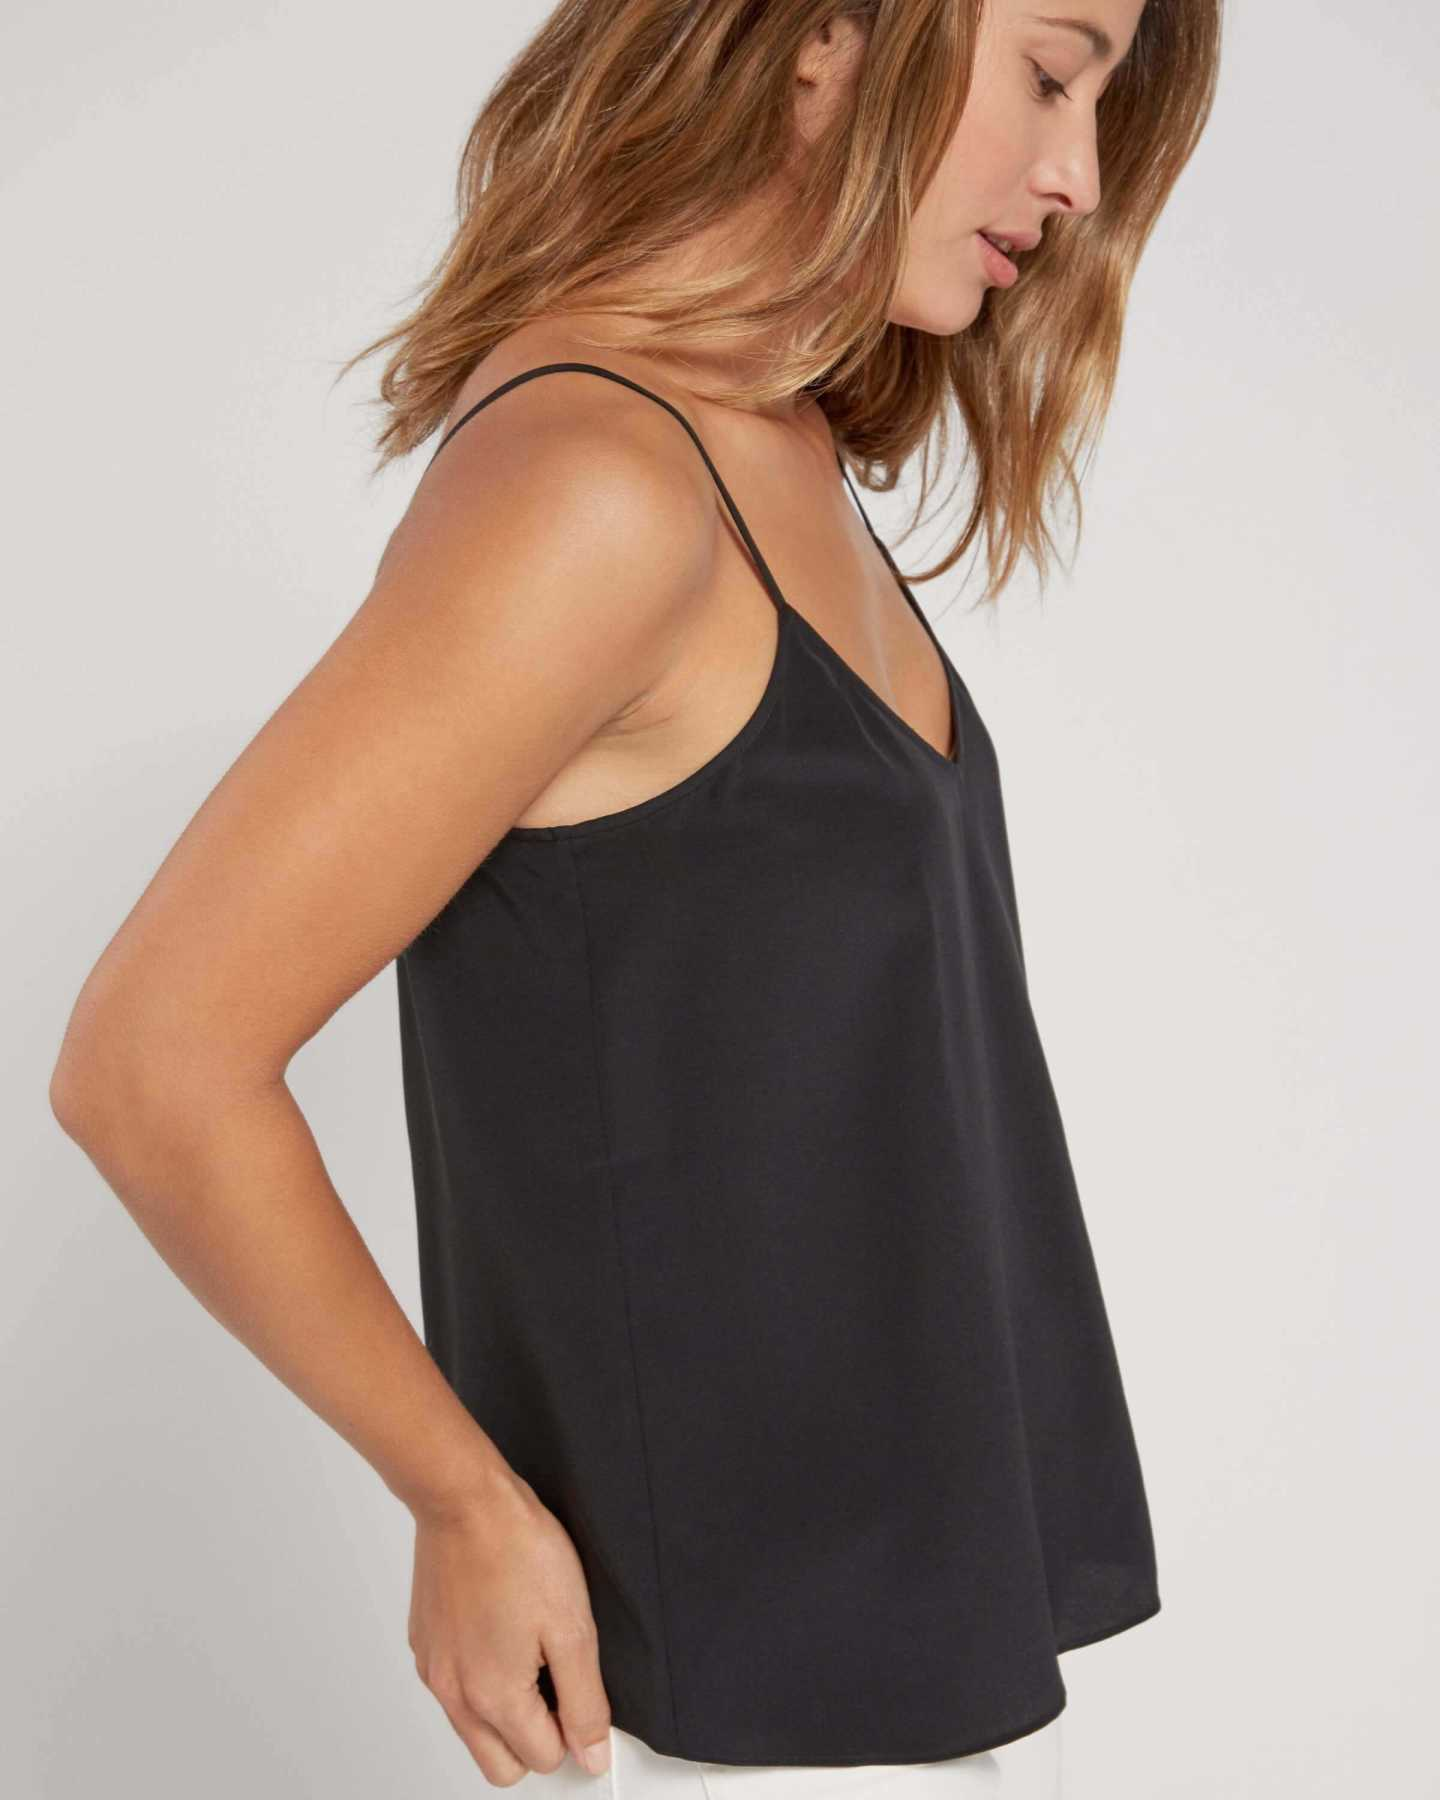 Woman wearing black silk camisole from side